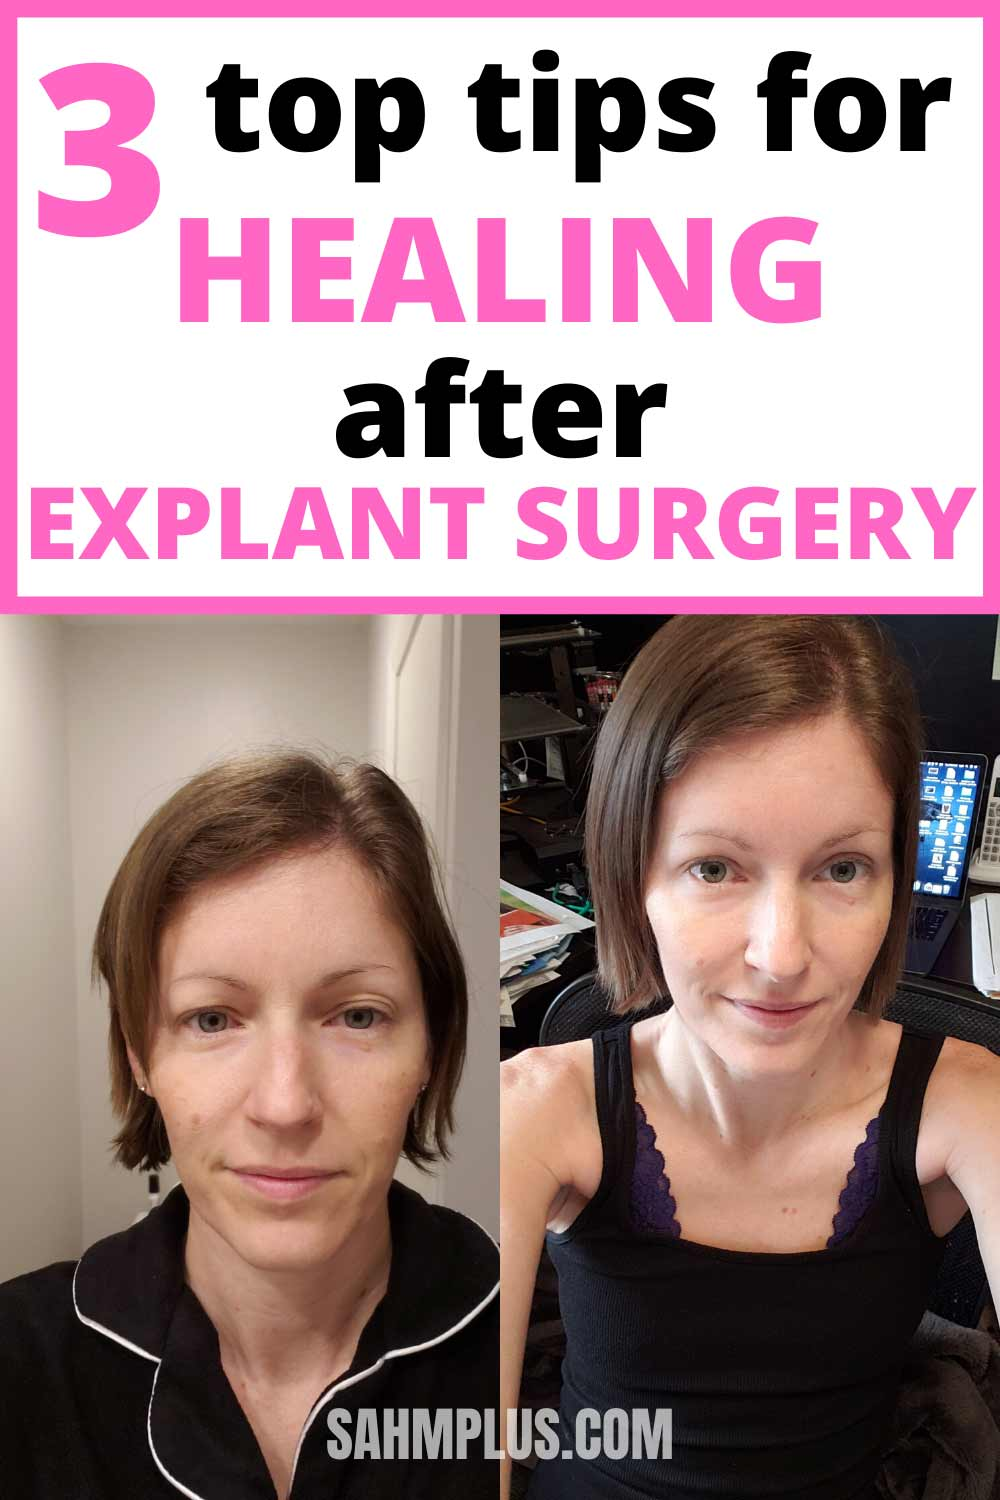 3 recovery tips after explant surgery. Natural healing after surgery